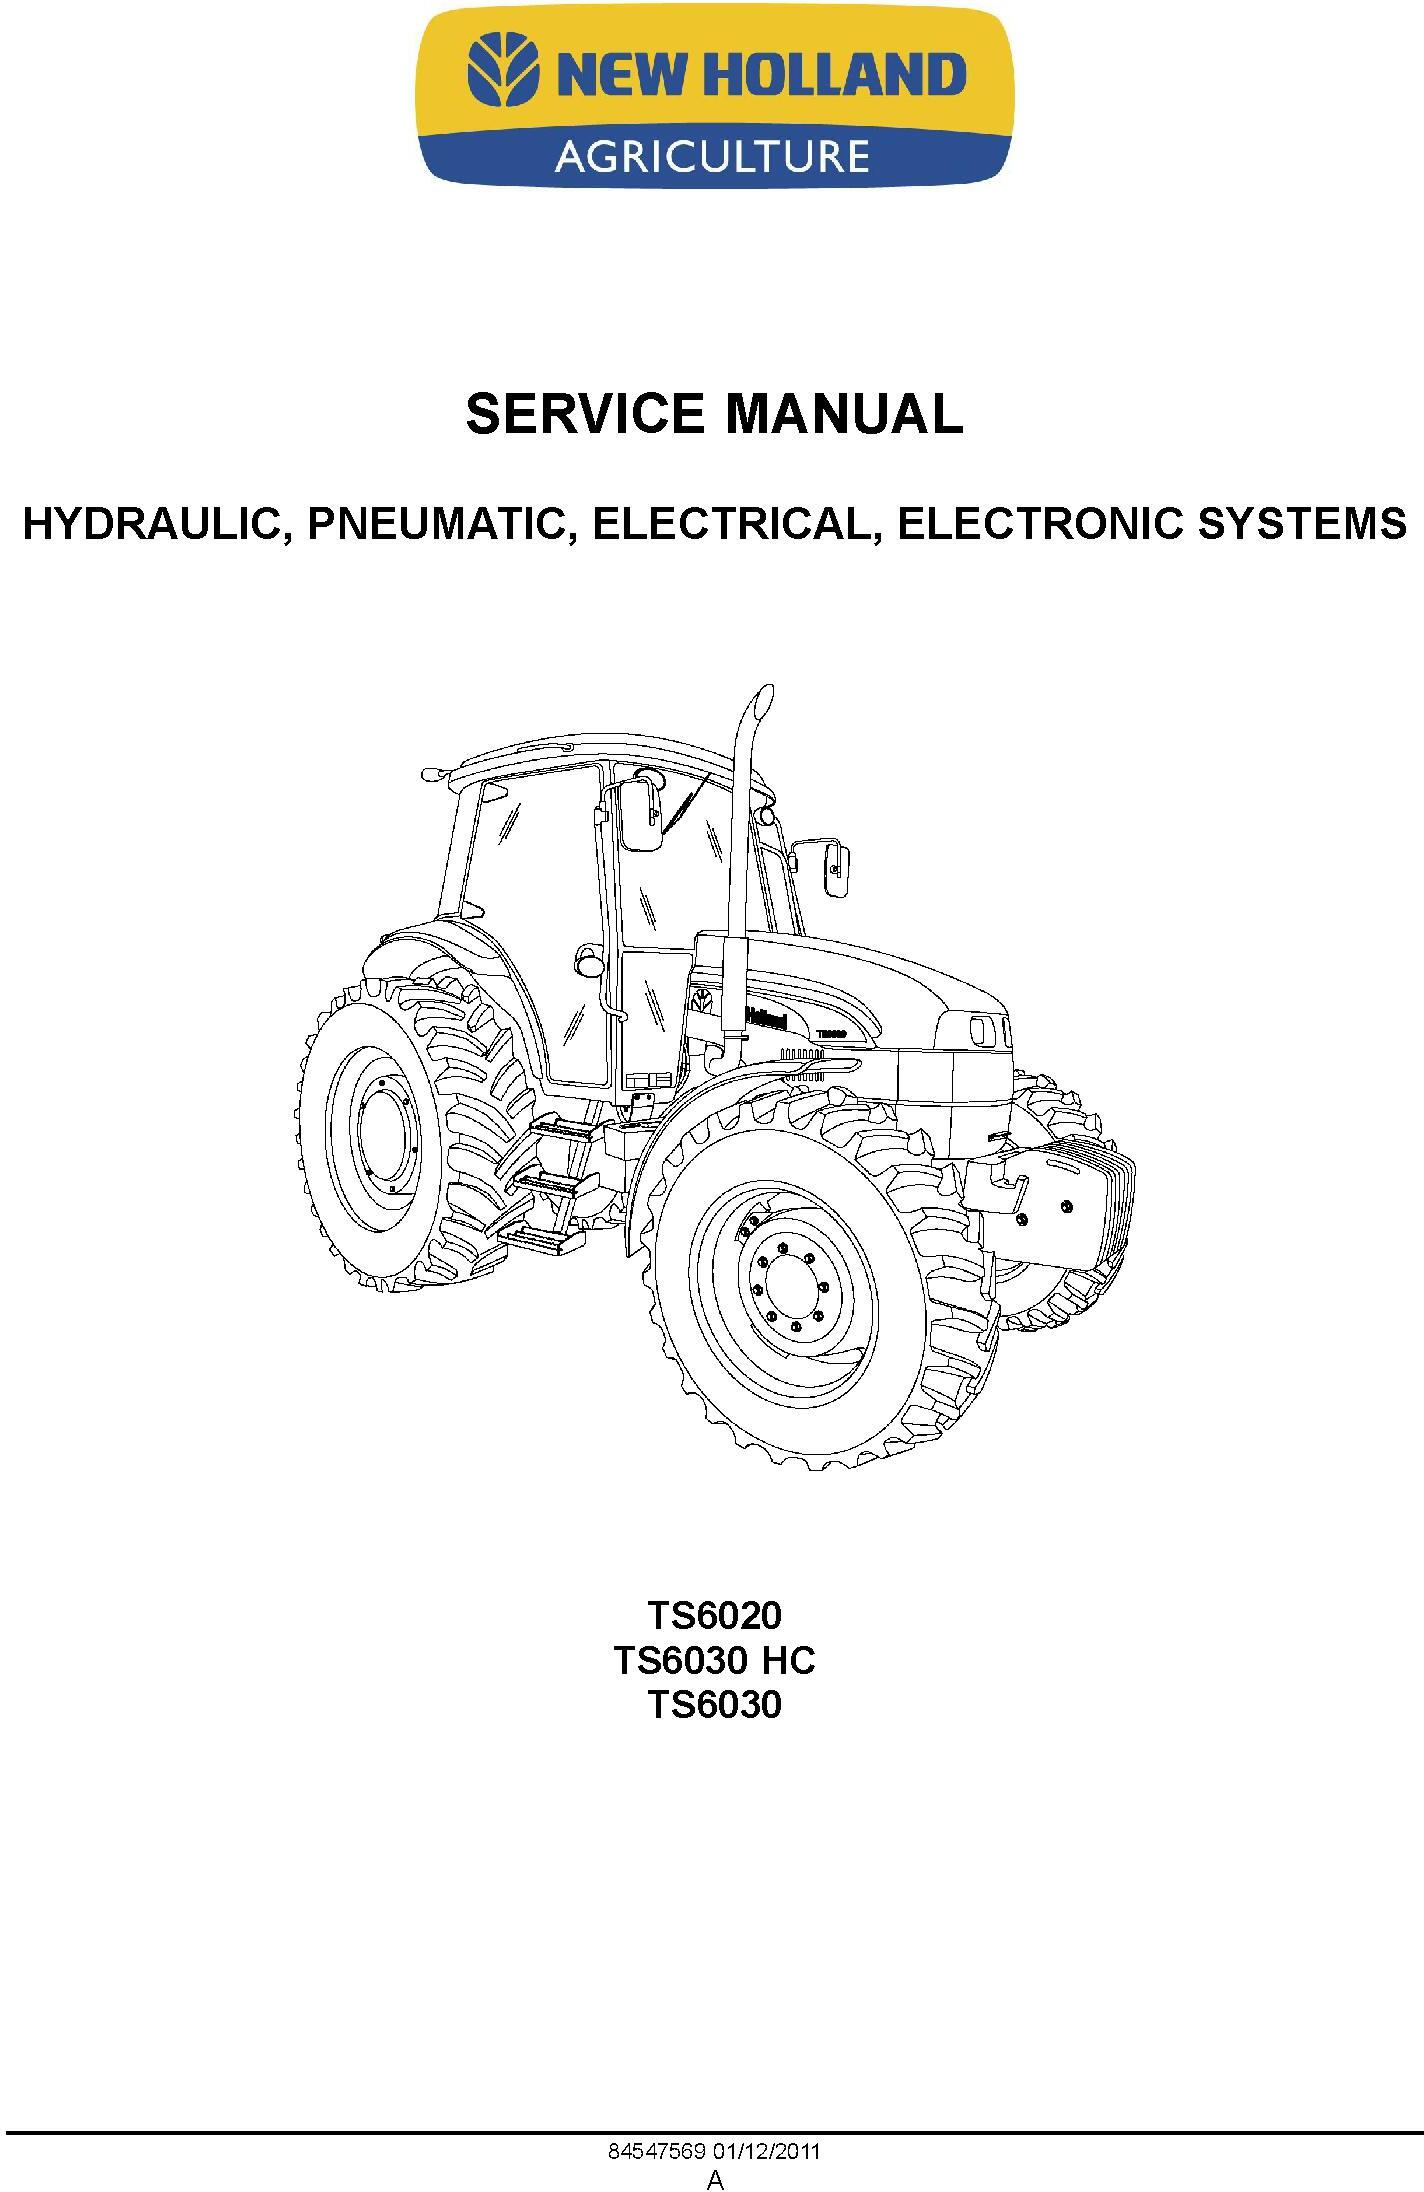 New Holland TS6020, TS6030, TS6030HC Tractor Complete Service Manual - 1